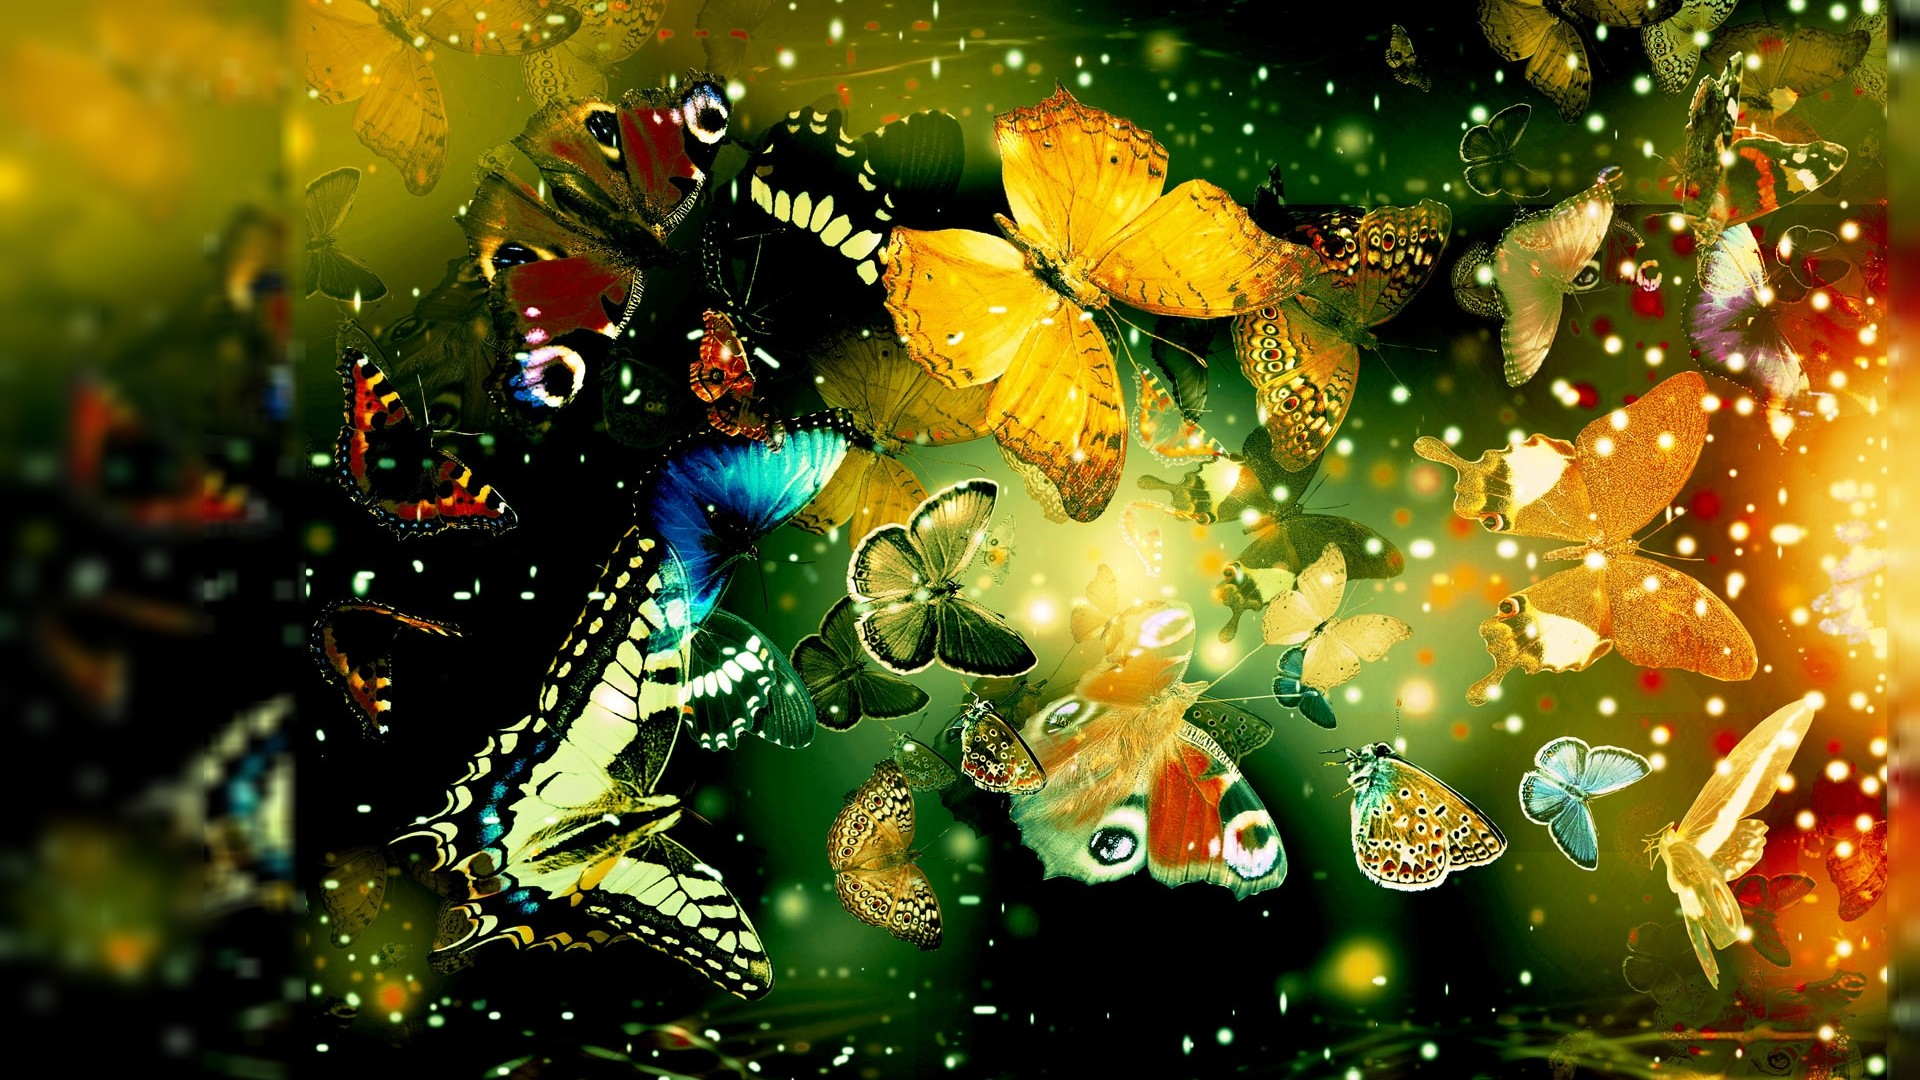 Cool Butterfly Designs HD Wallpaper | Unique Nature HD Wallpapers Wallpaper